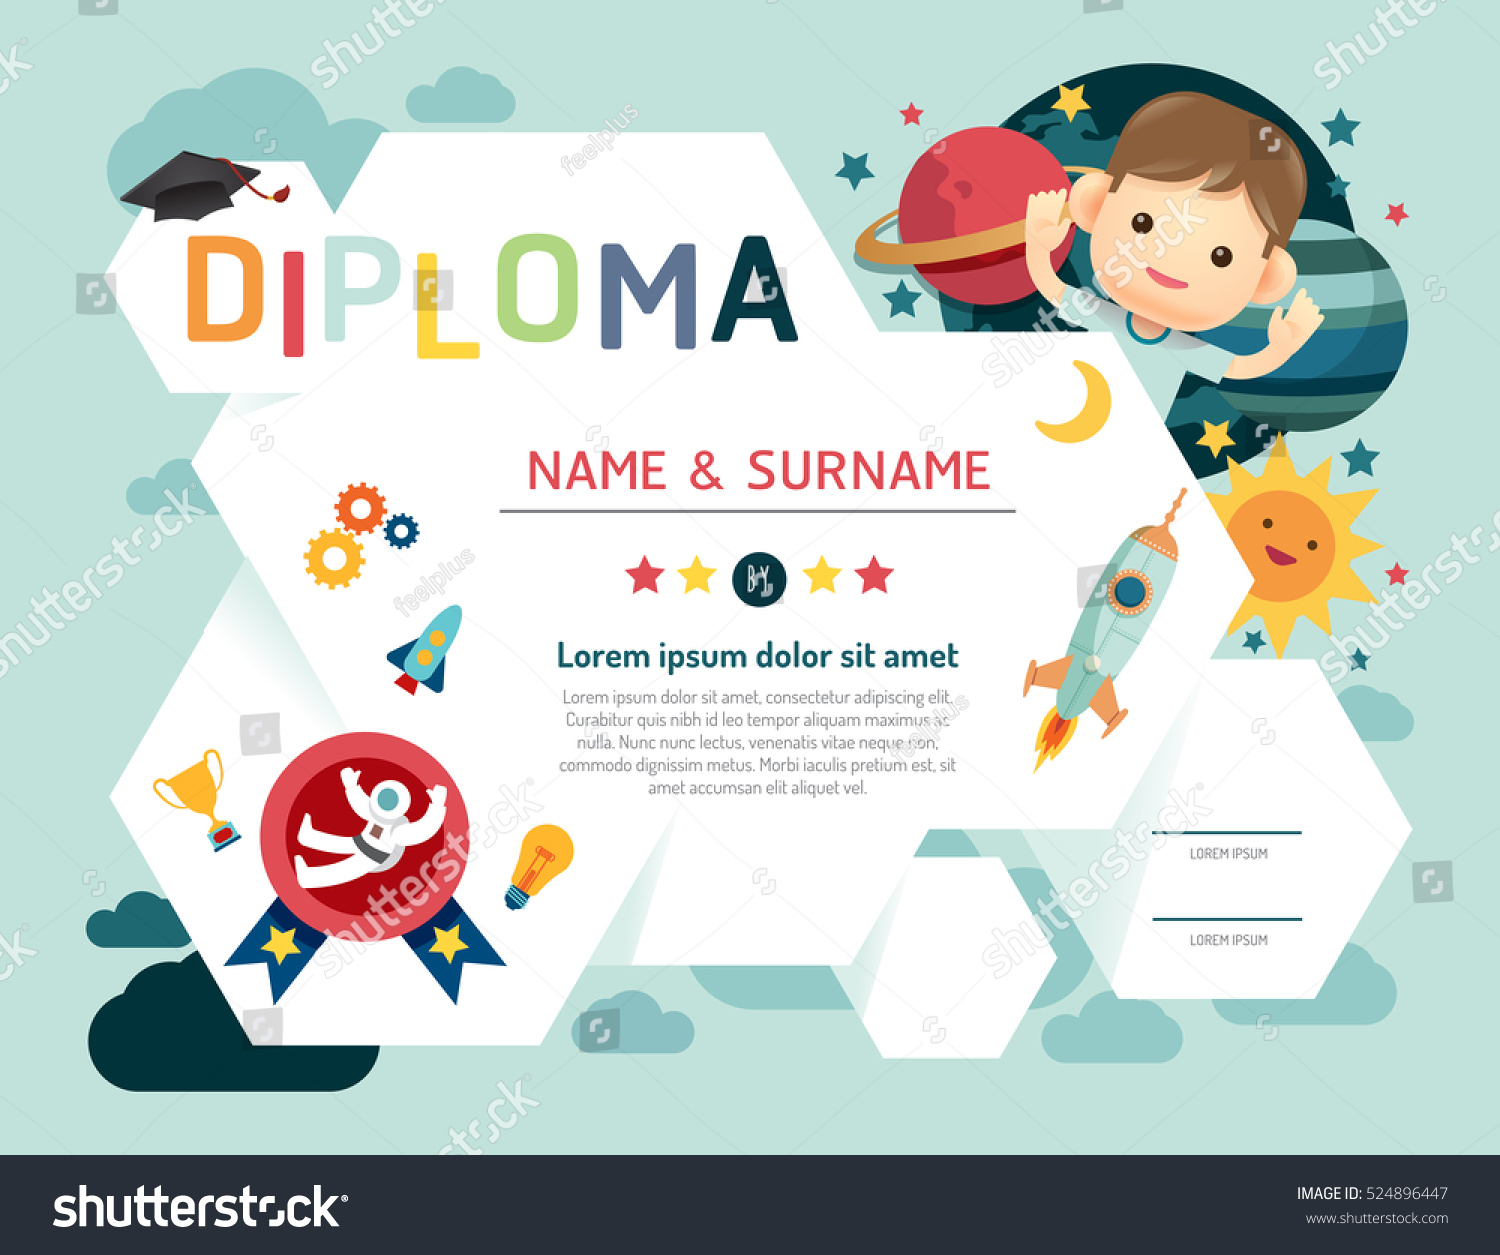 Joke divorce papers contract of homemade gift vouchers templates joke divorce papers birth certificate sample resume finance stock vector certificate kids diploma kindergarten template layout yadclub Image collections